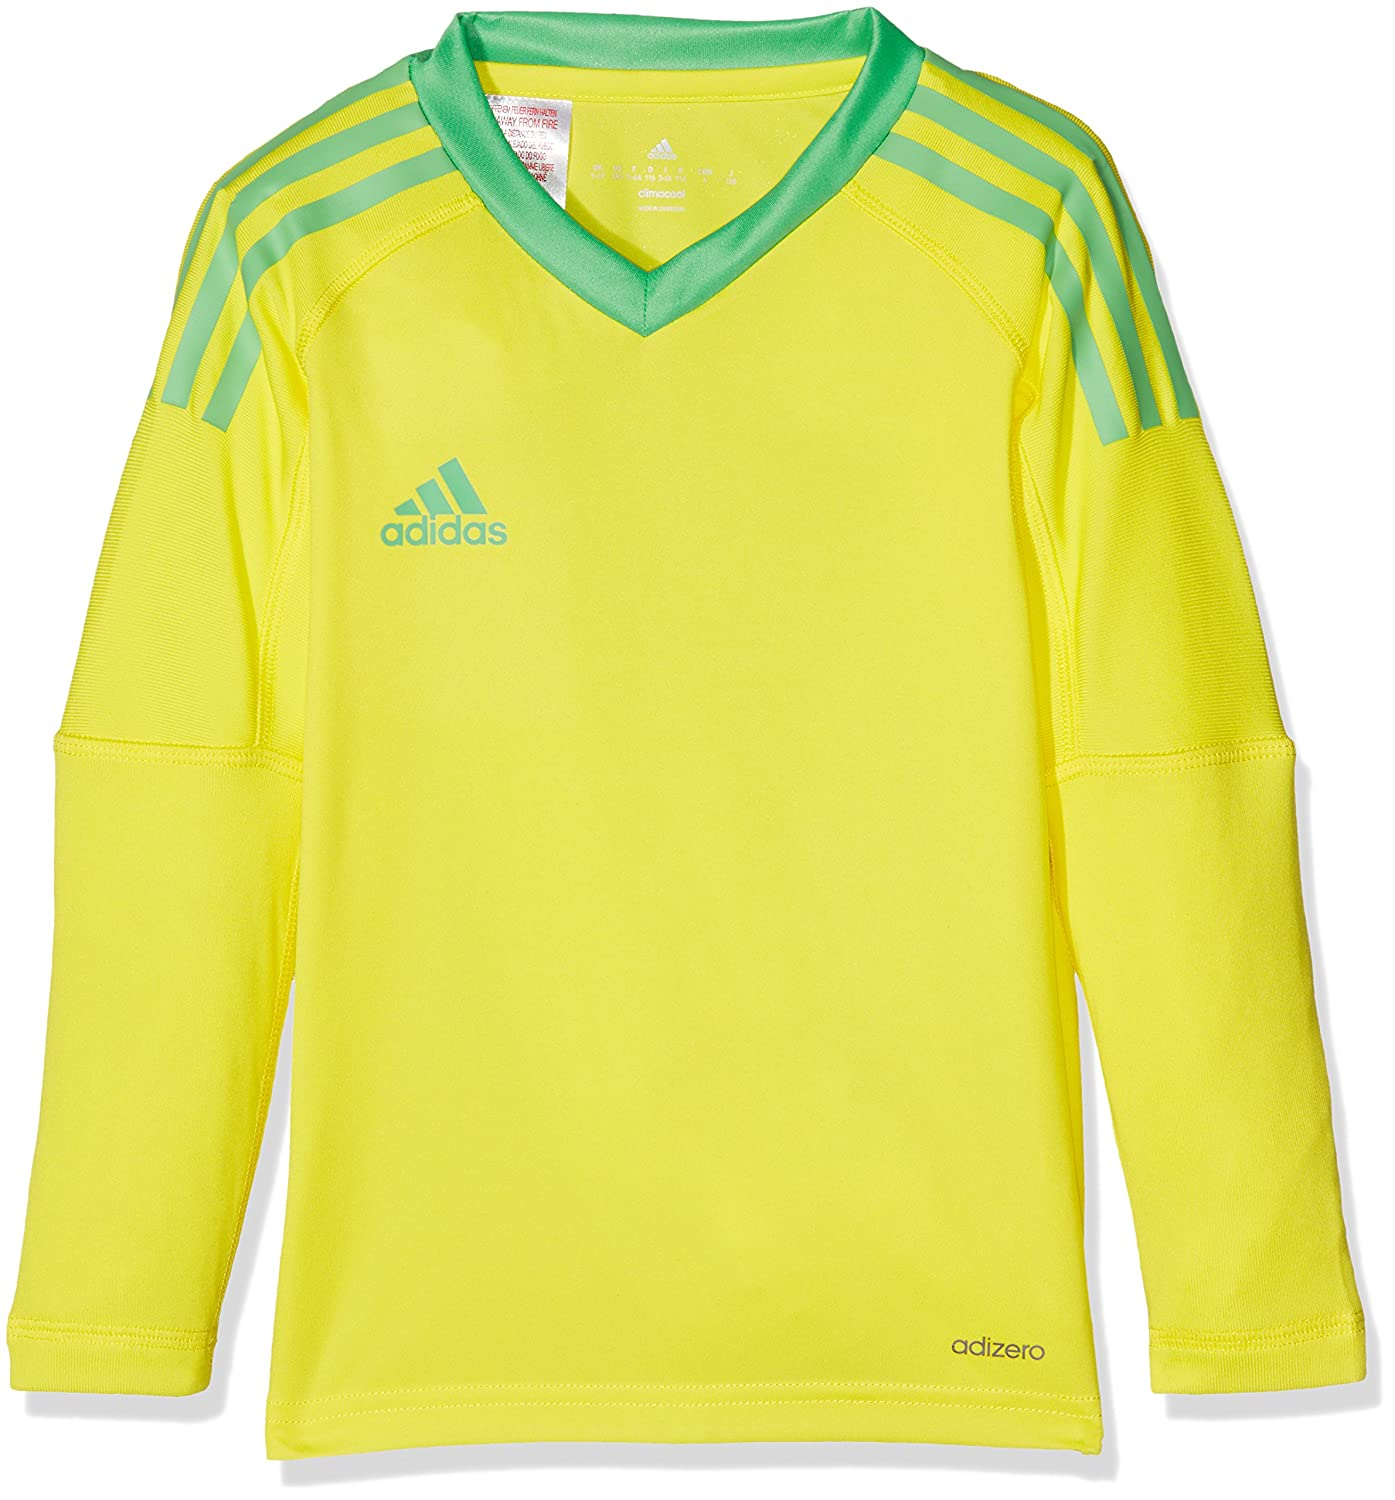 ADIDAS Kinder Revigo 17 Torwarttrikot